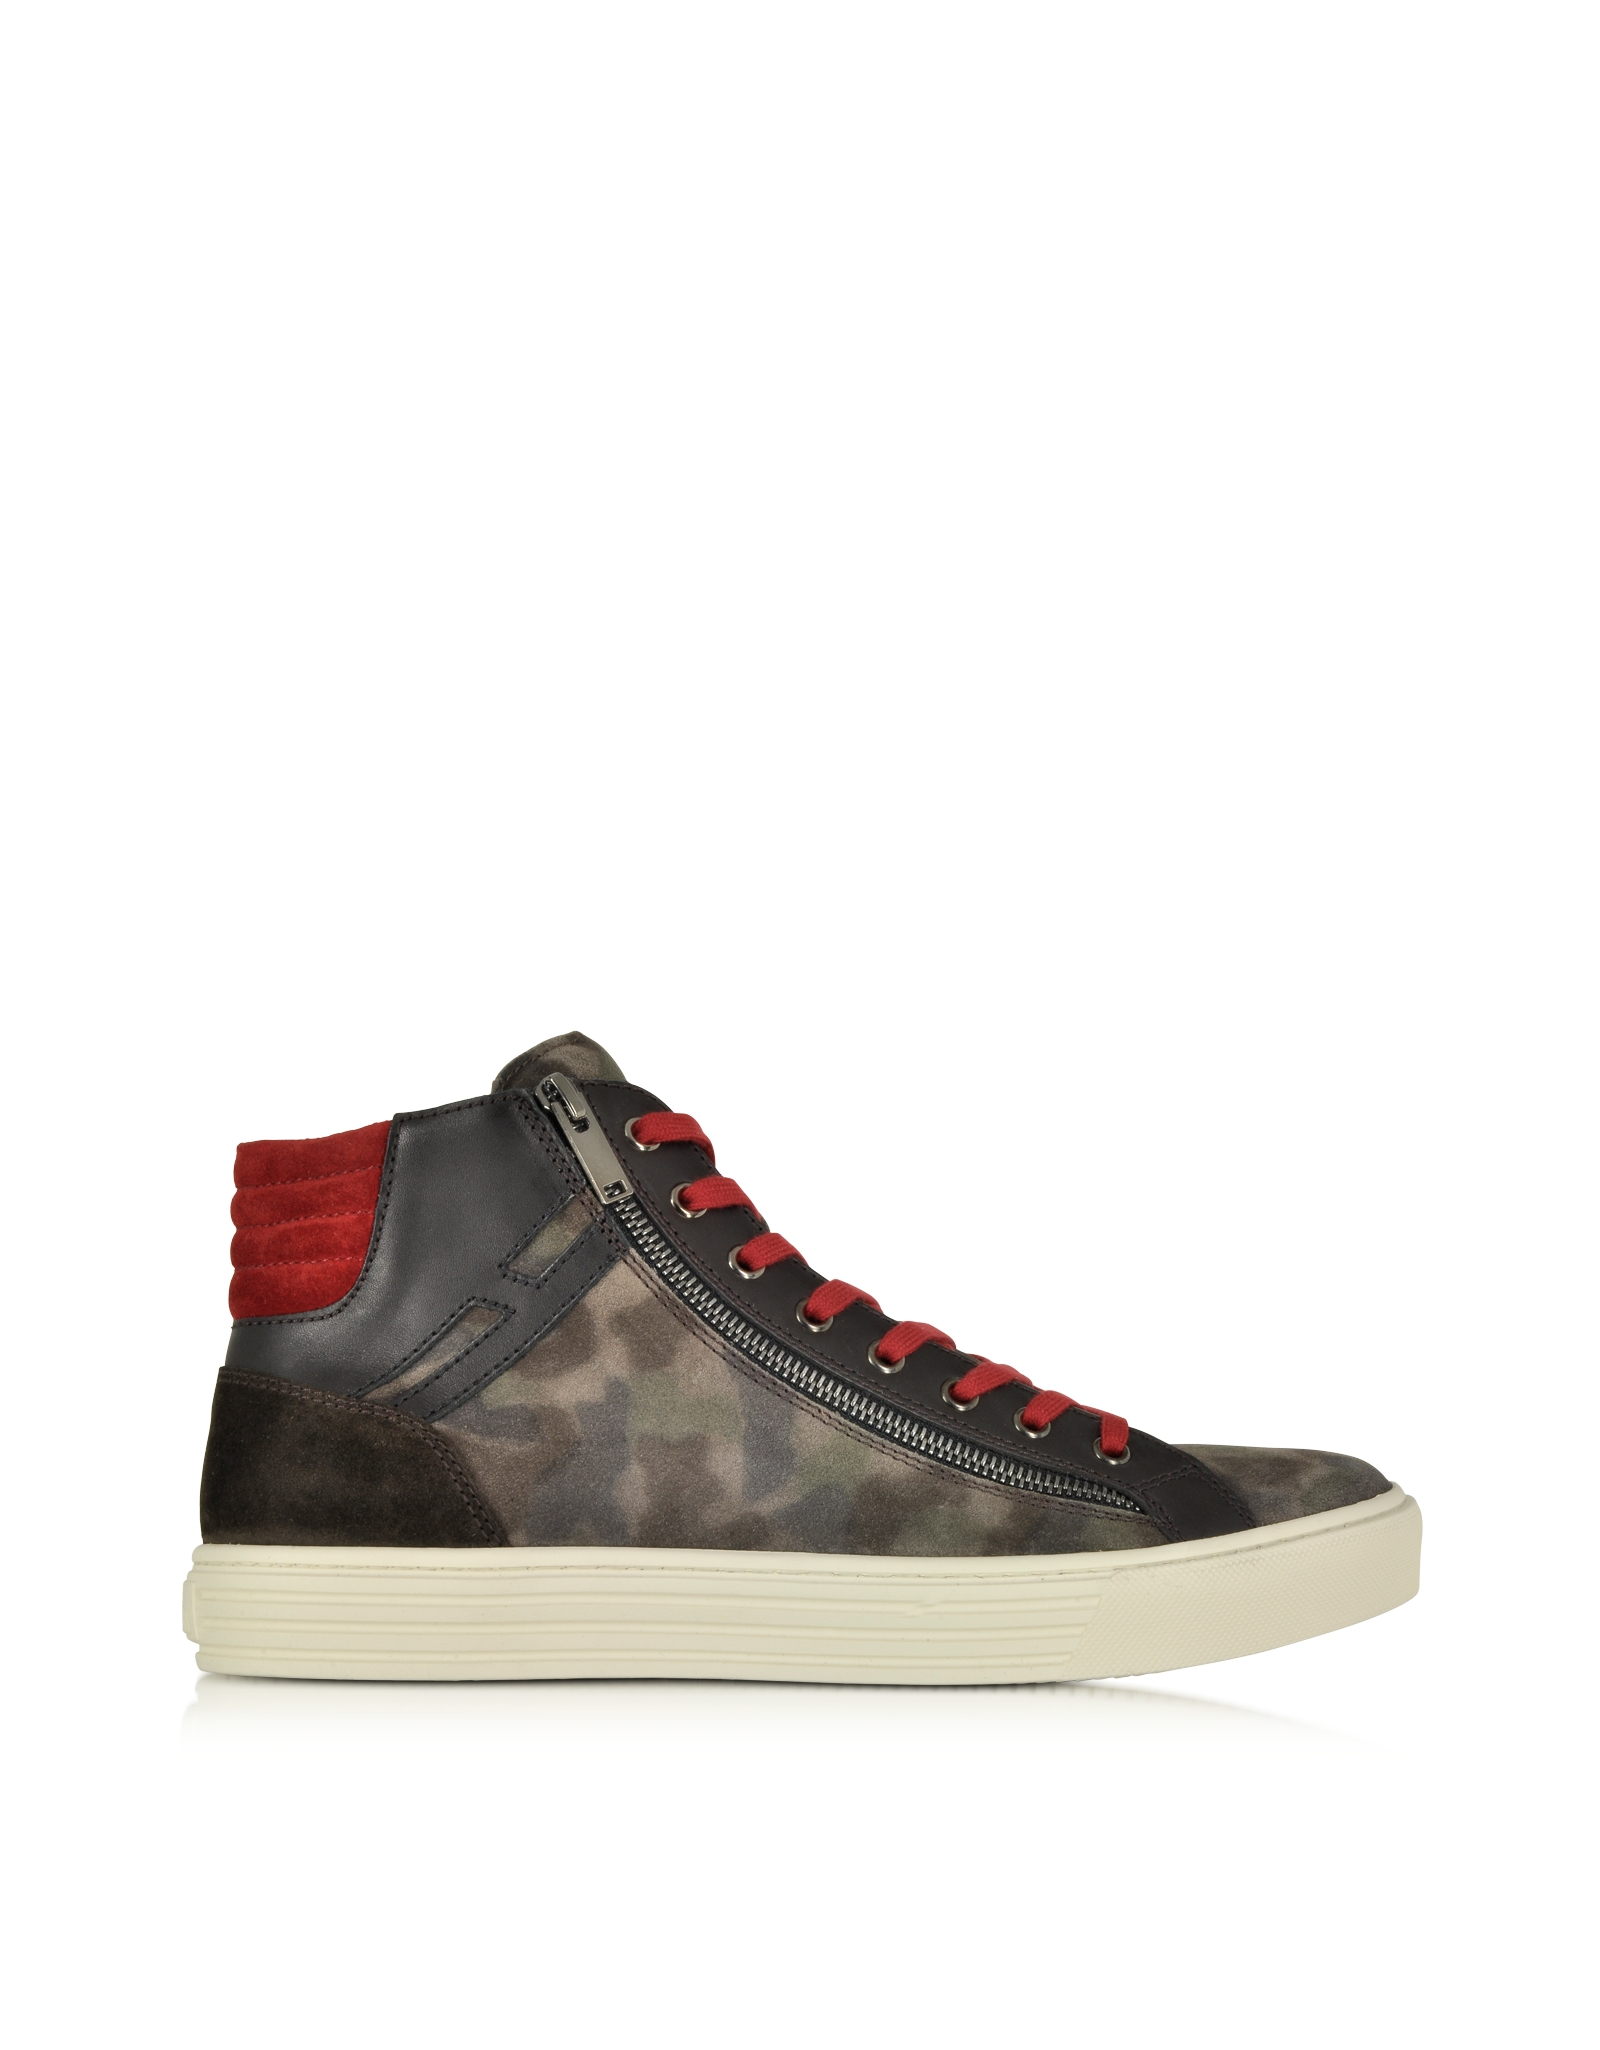 Forzieri Hogan Lyst Hogan Rebel Multicolor Leather And Suede High Top